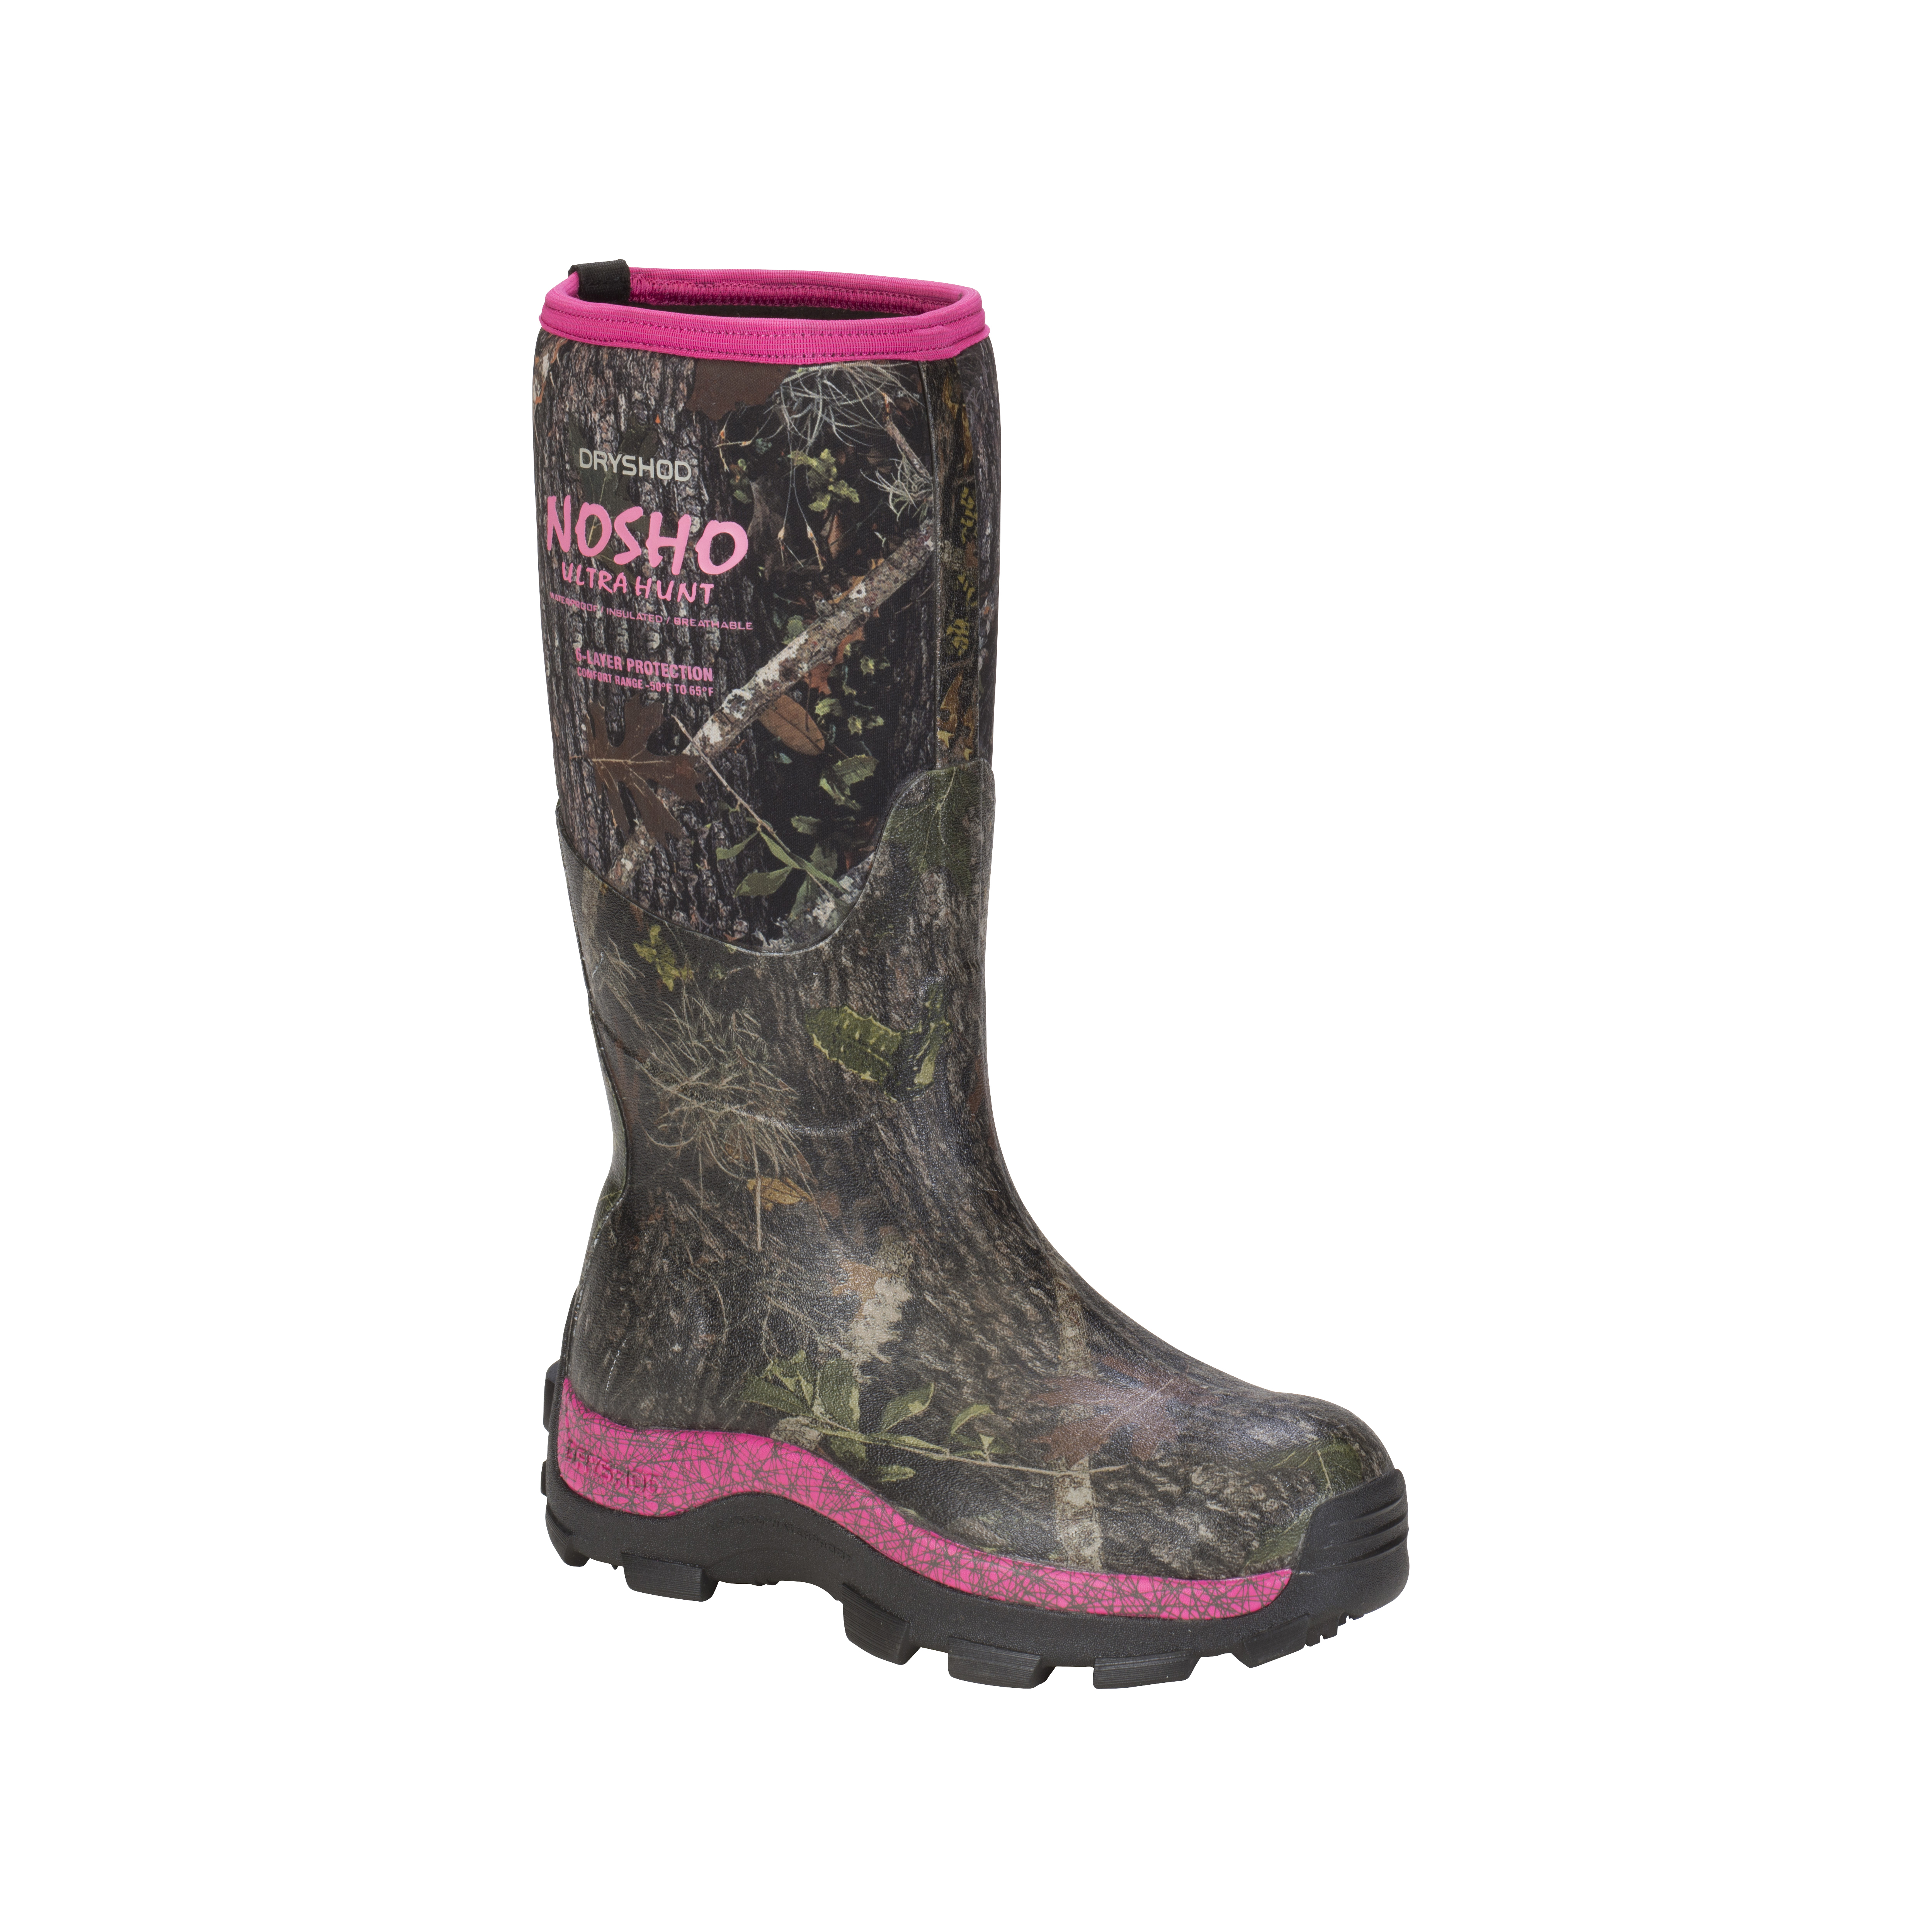 Dryshod Women's NoSho Ultra Hunt Camo Extreme Cold-Condition Boots - Hi Cut - Size 8, Camo/Pink